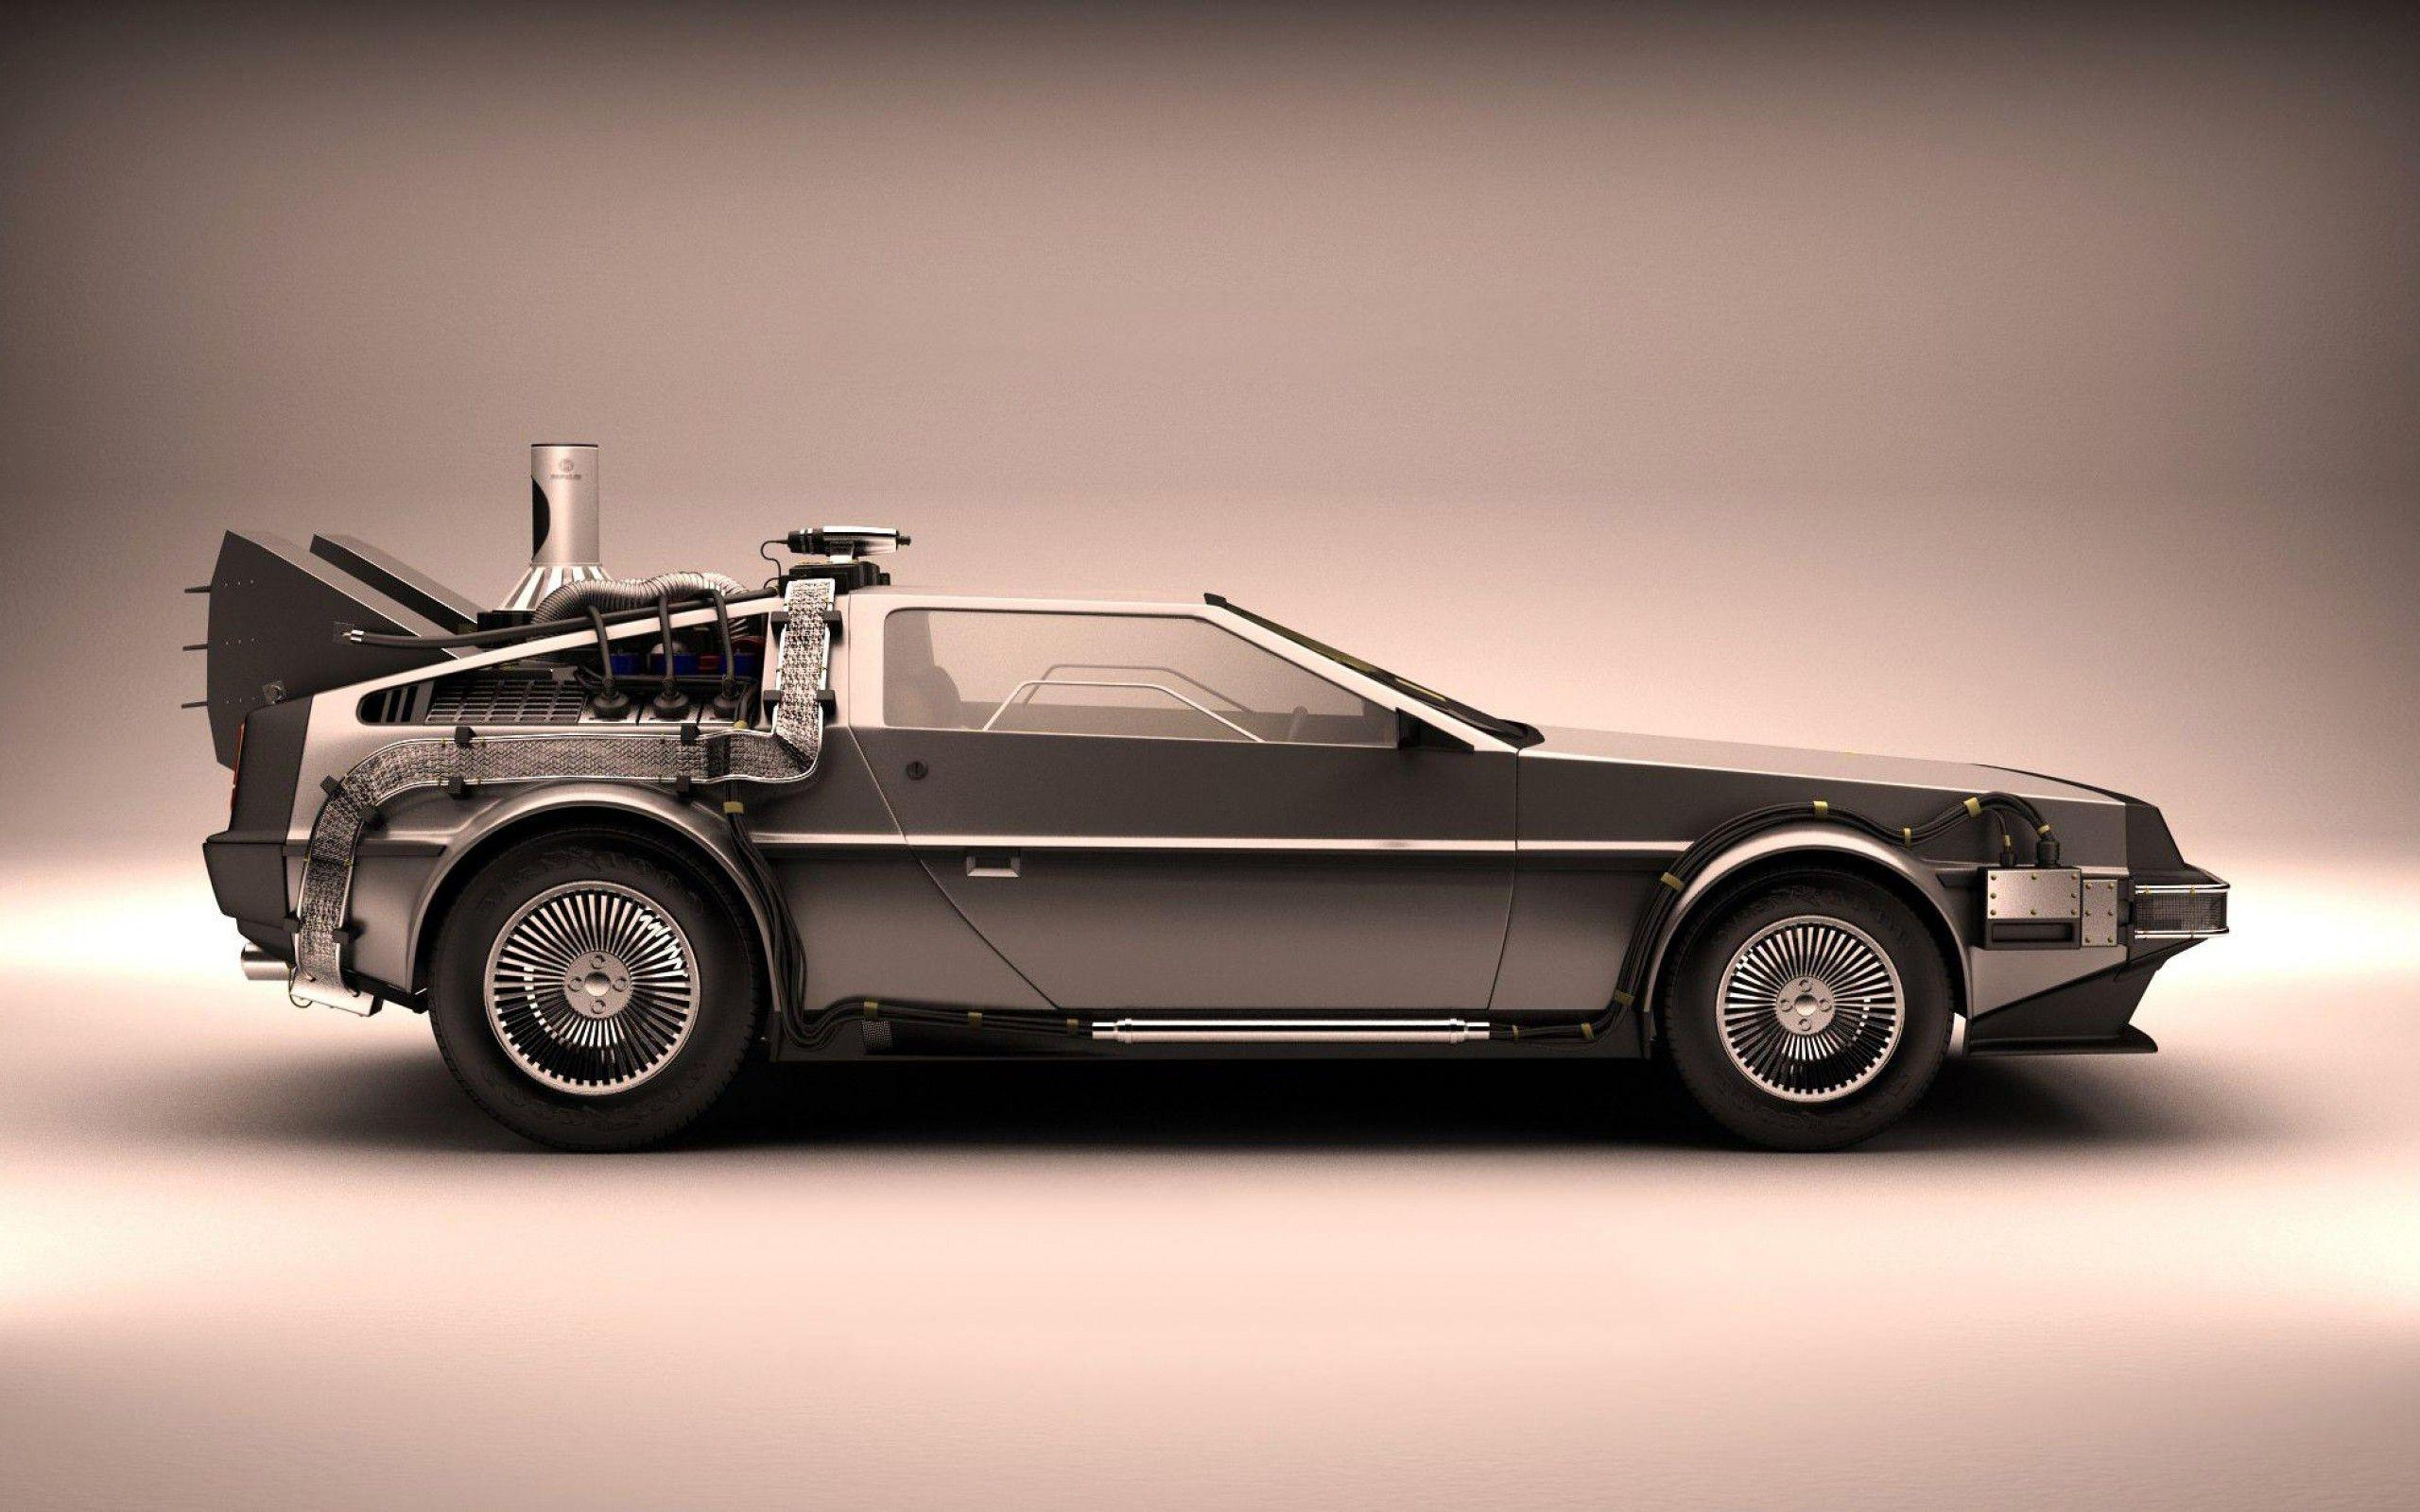 delorean car wallpaper background 62492